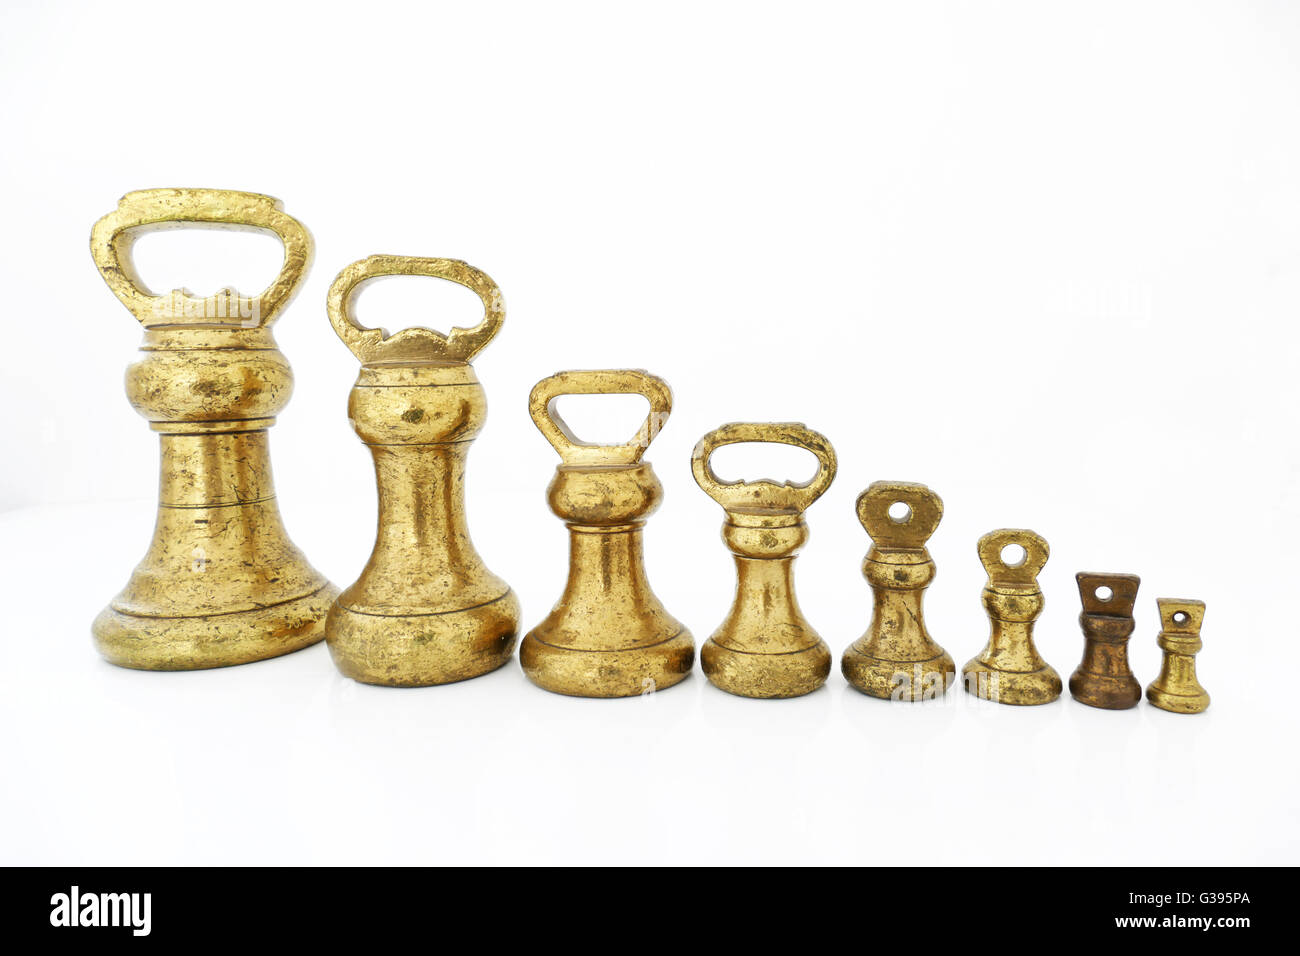 Old fashioned Imperial brass weights which were used on traditional scales,ranging from 4Lbs down to 1oz, pre metric. Stock Photo